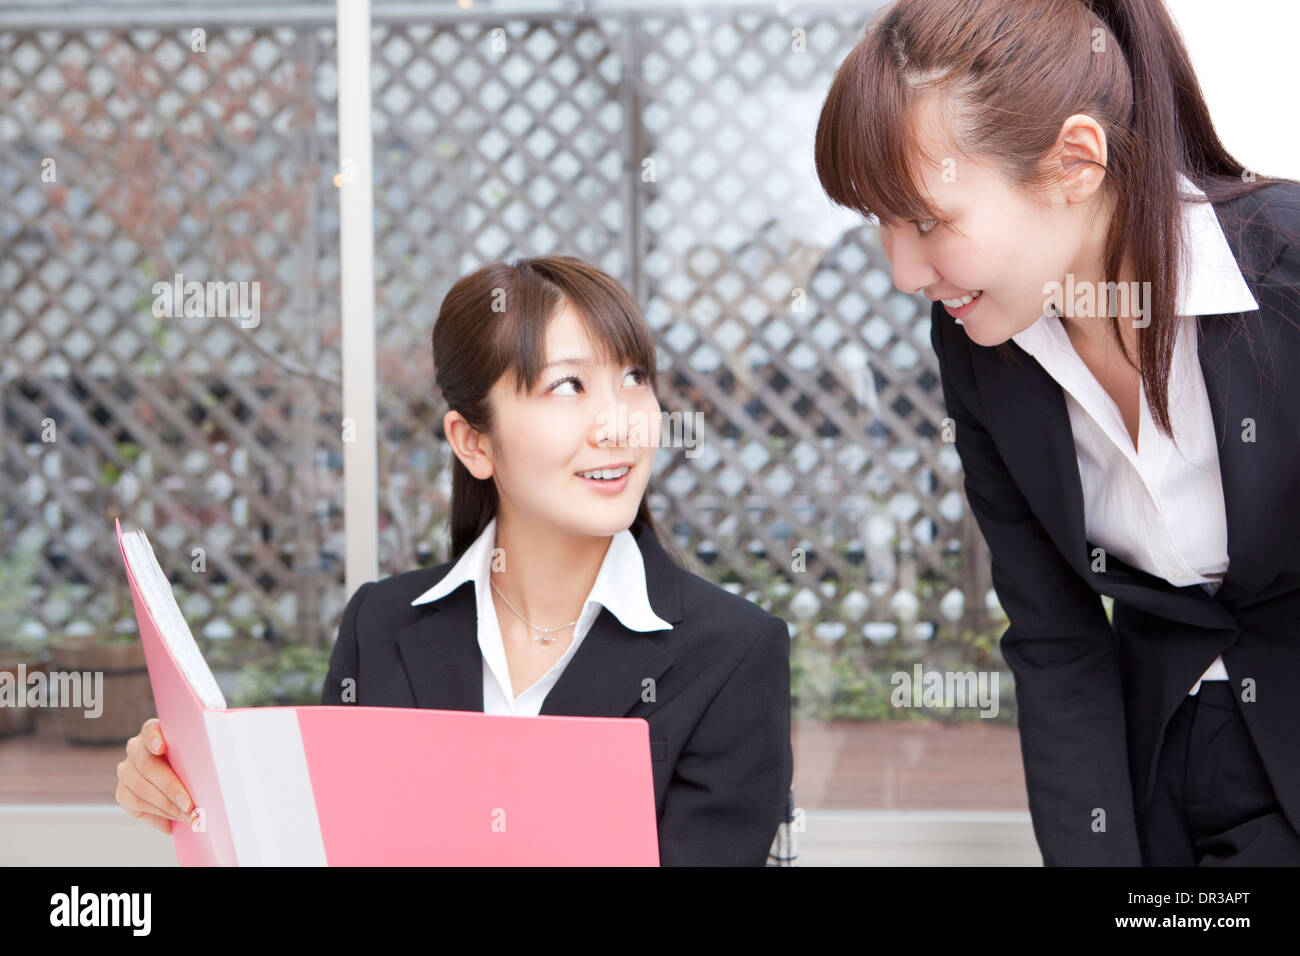 Two young women looking at file - Stock Image